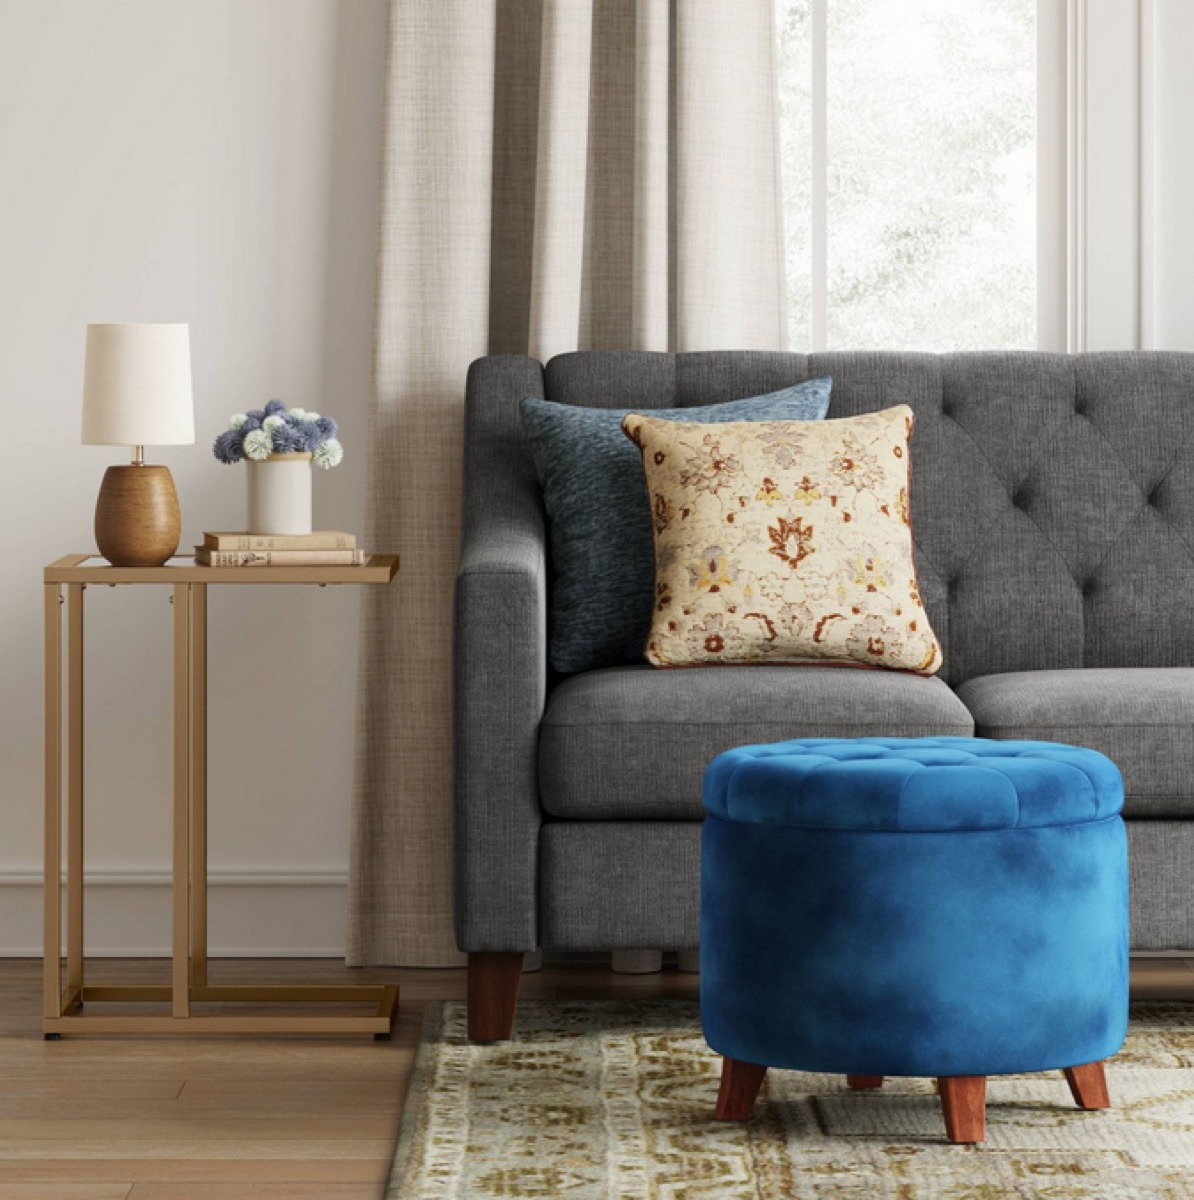 living room with blue tufted ottoman